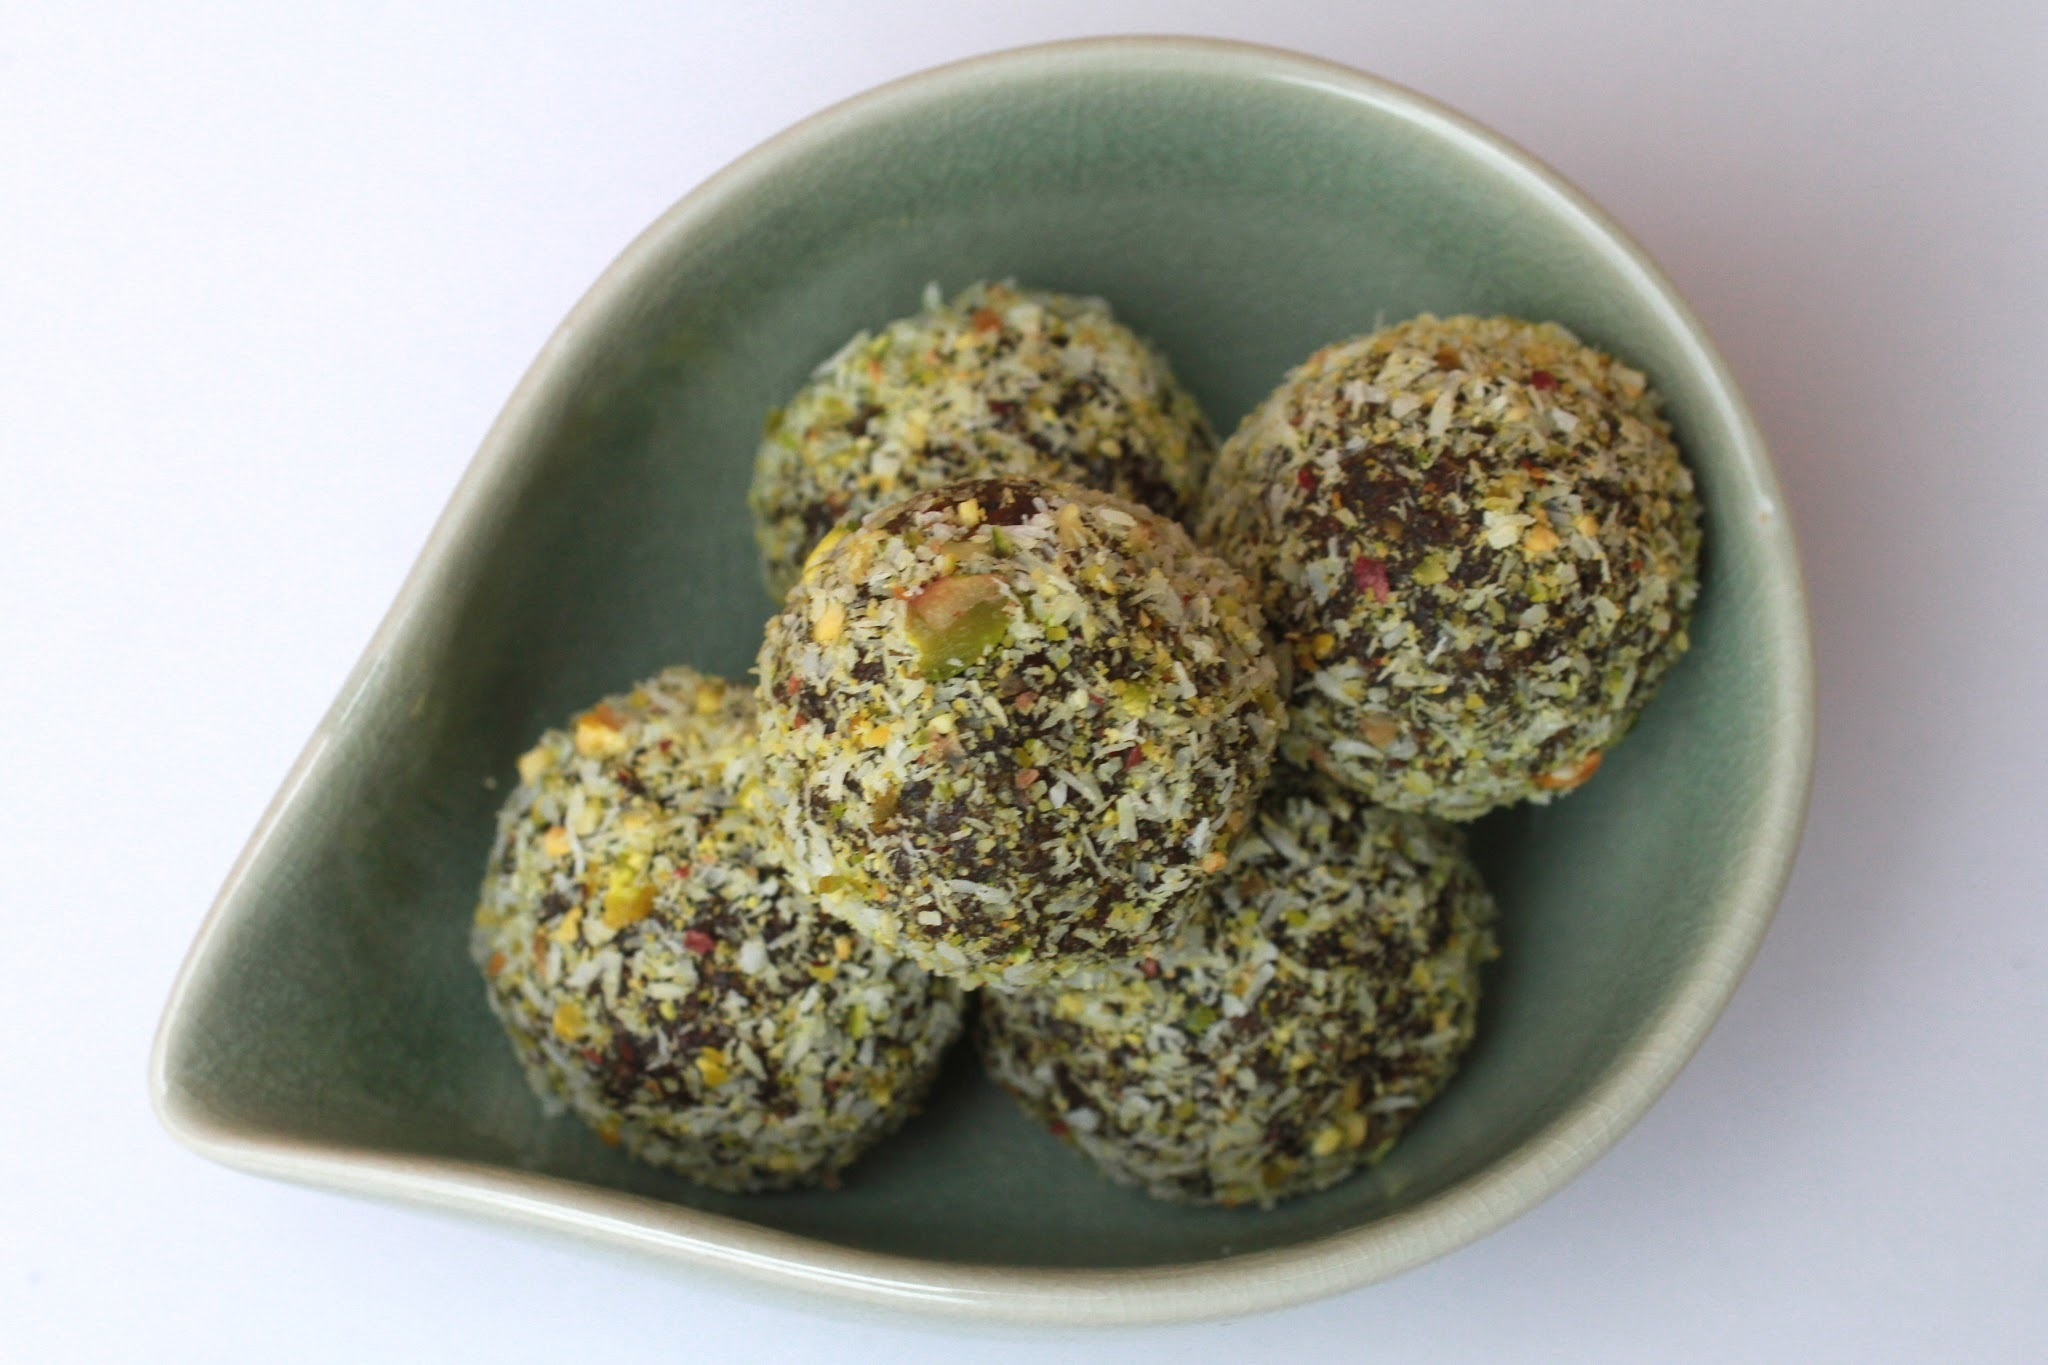 Green superfood balls